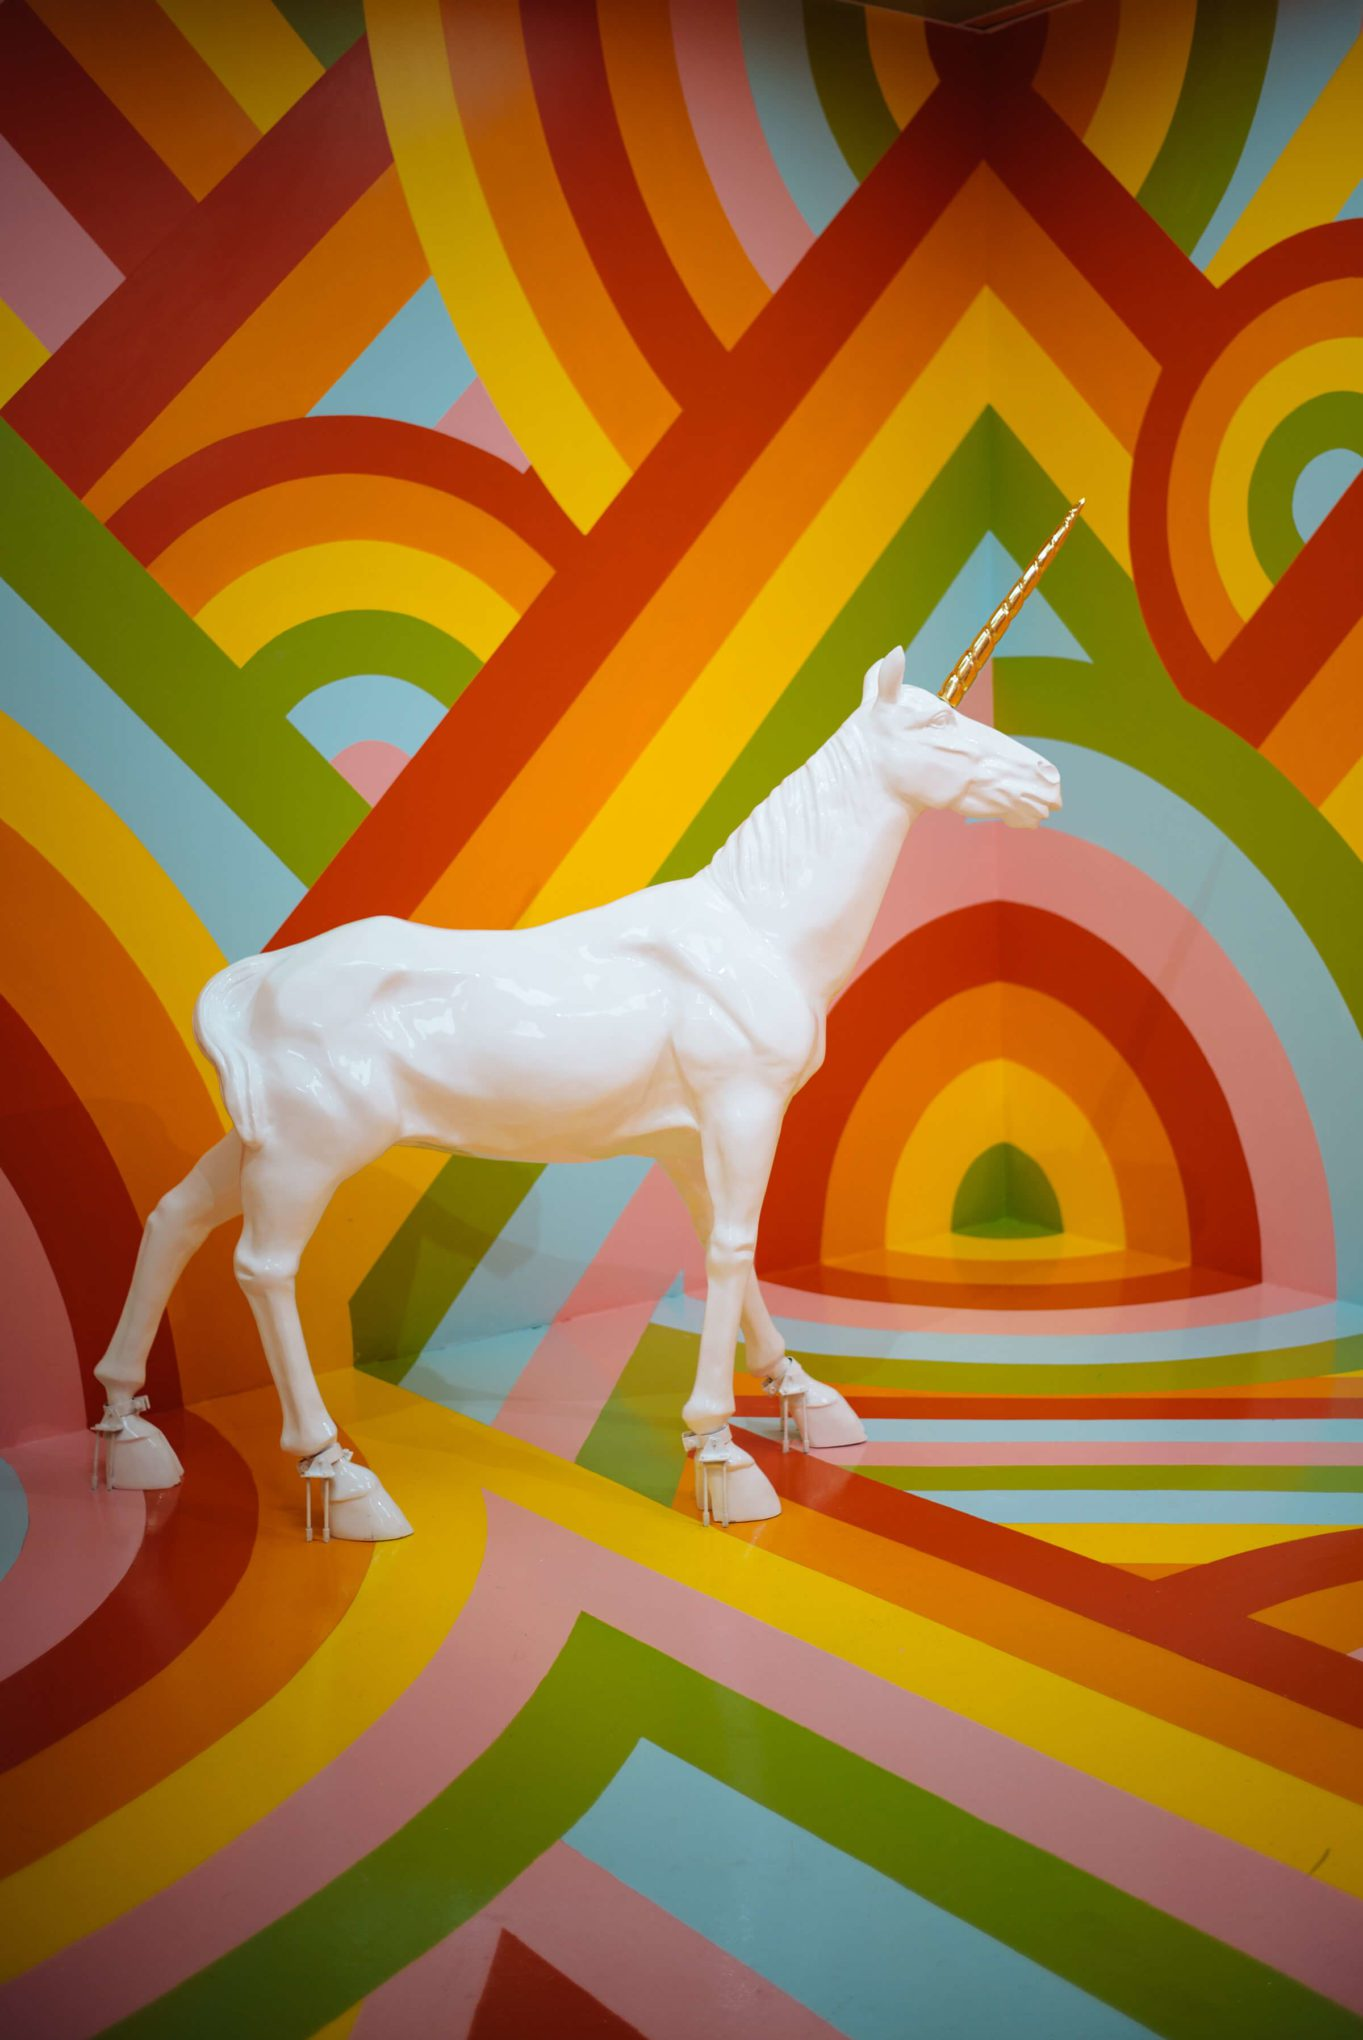 The colorful unicorn room at The Museum of Ice Cream San Francisco, The Taste SF